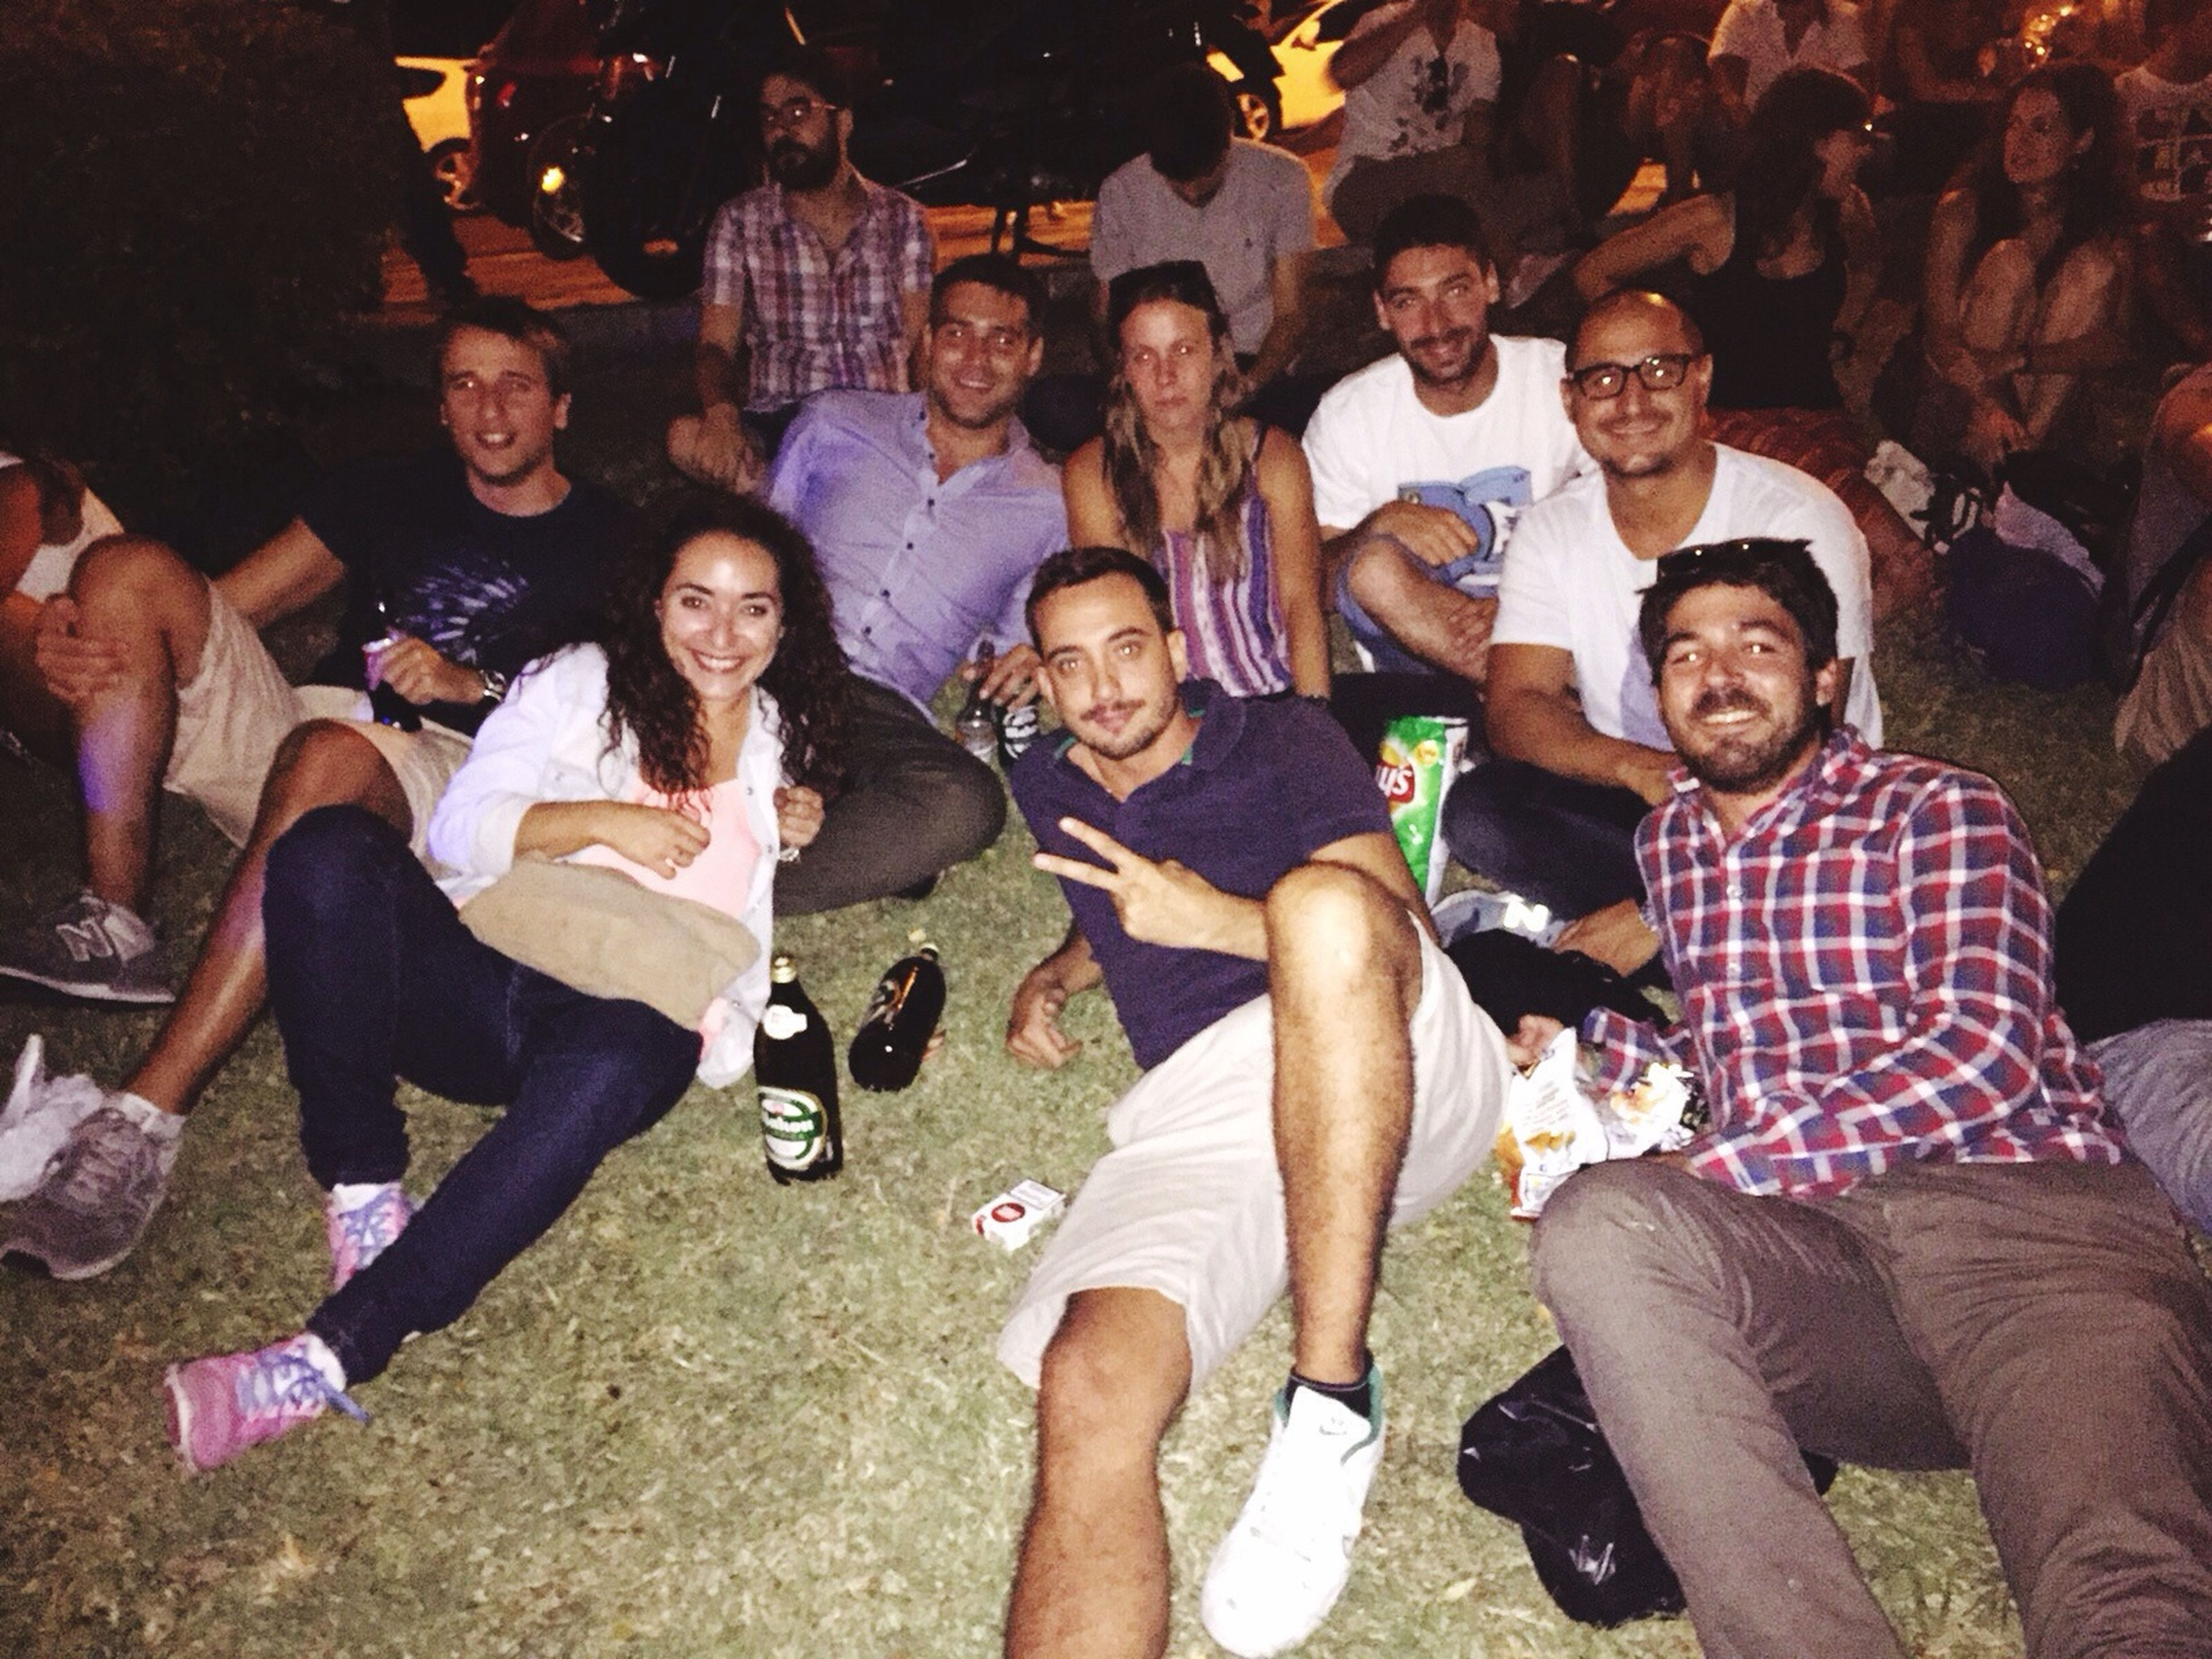 togetherness, lifestyles, leisure activity, friendship, bonding, love, standing, casual clothing, person, large group of people, fun, sitting, men, happiness, enjoyment, high angle view, side by side, outdoors